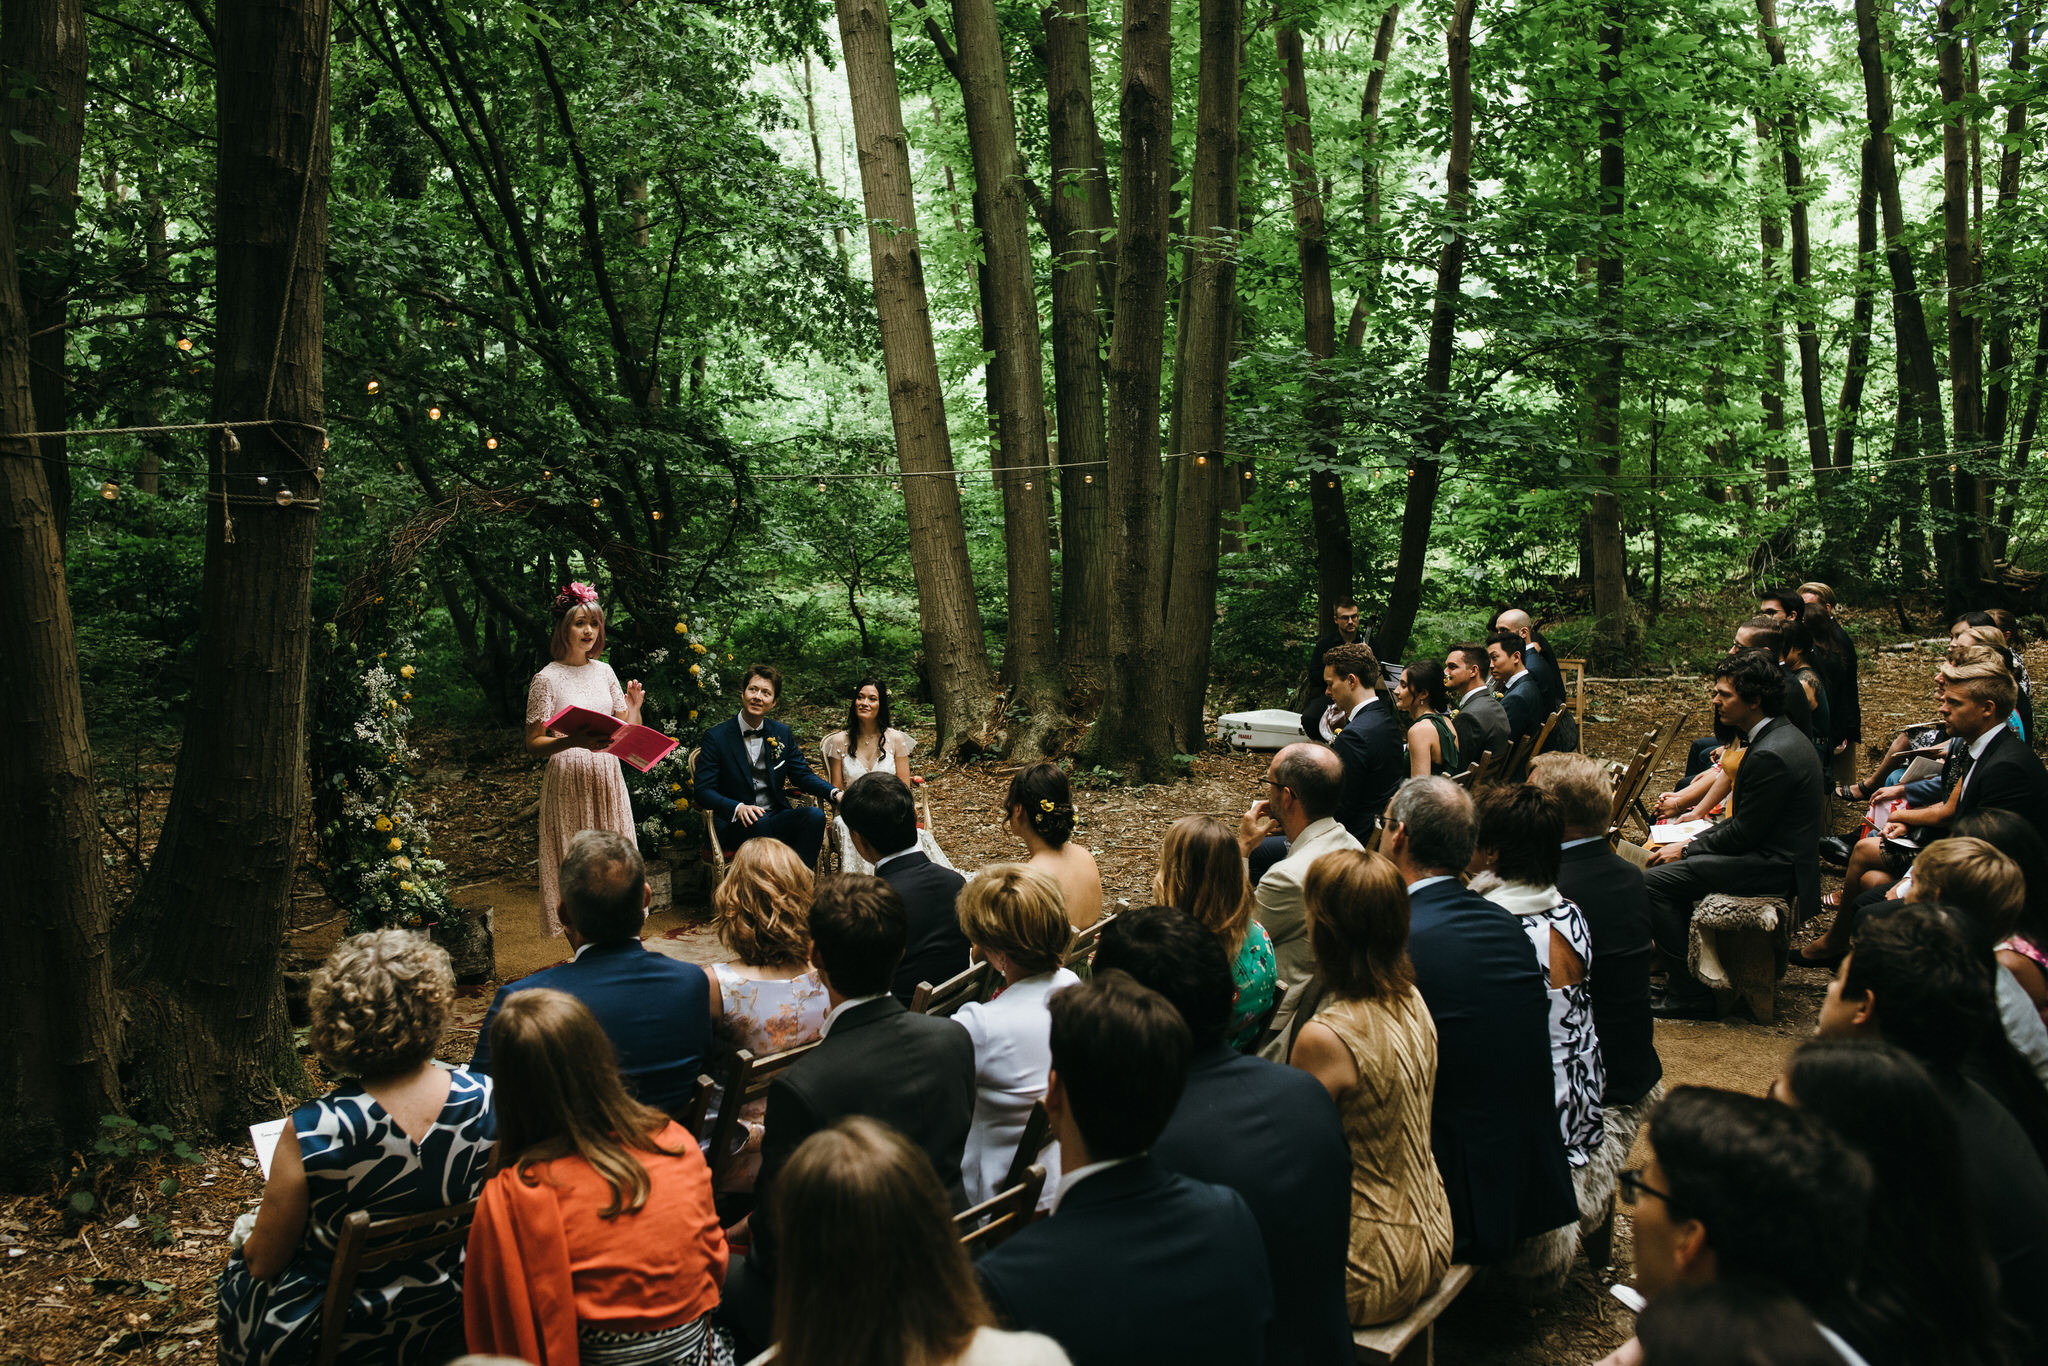 The dreys kent humanist wedding ceremony in the woods